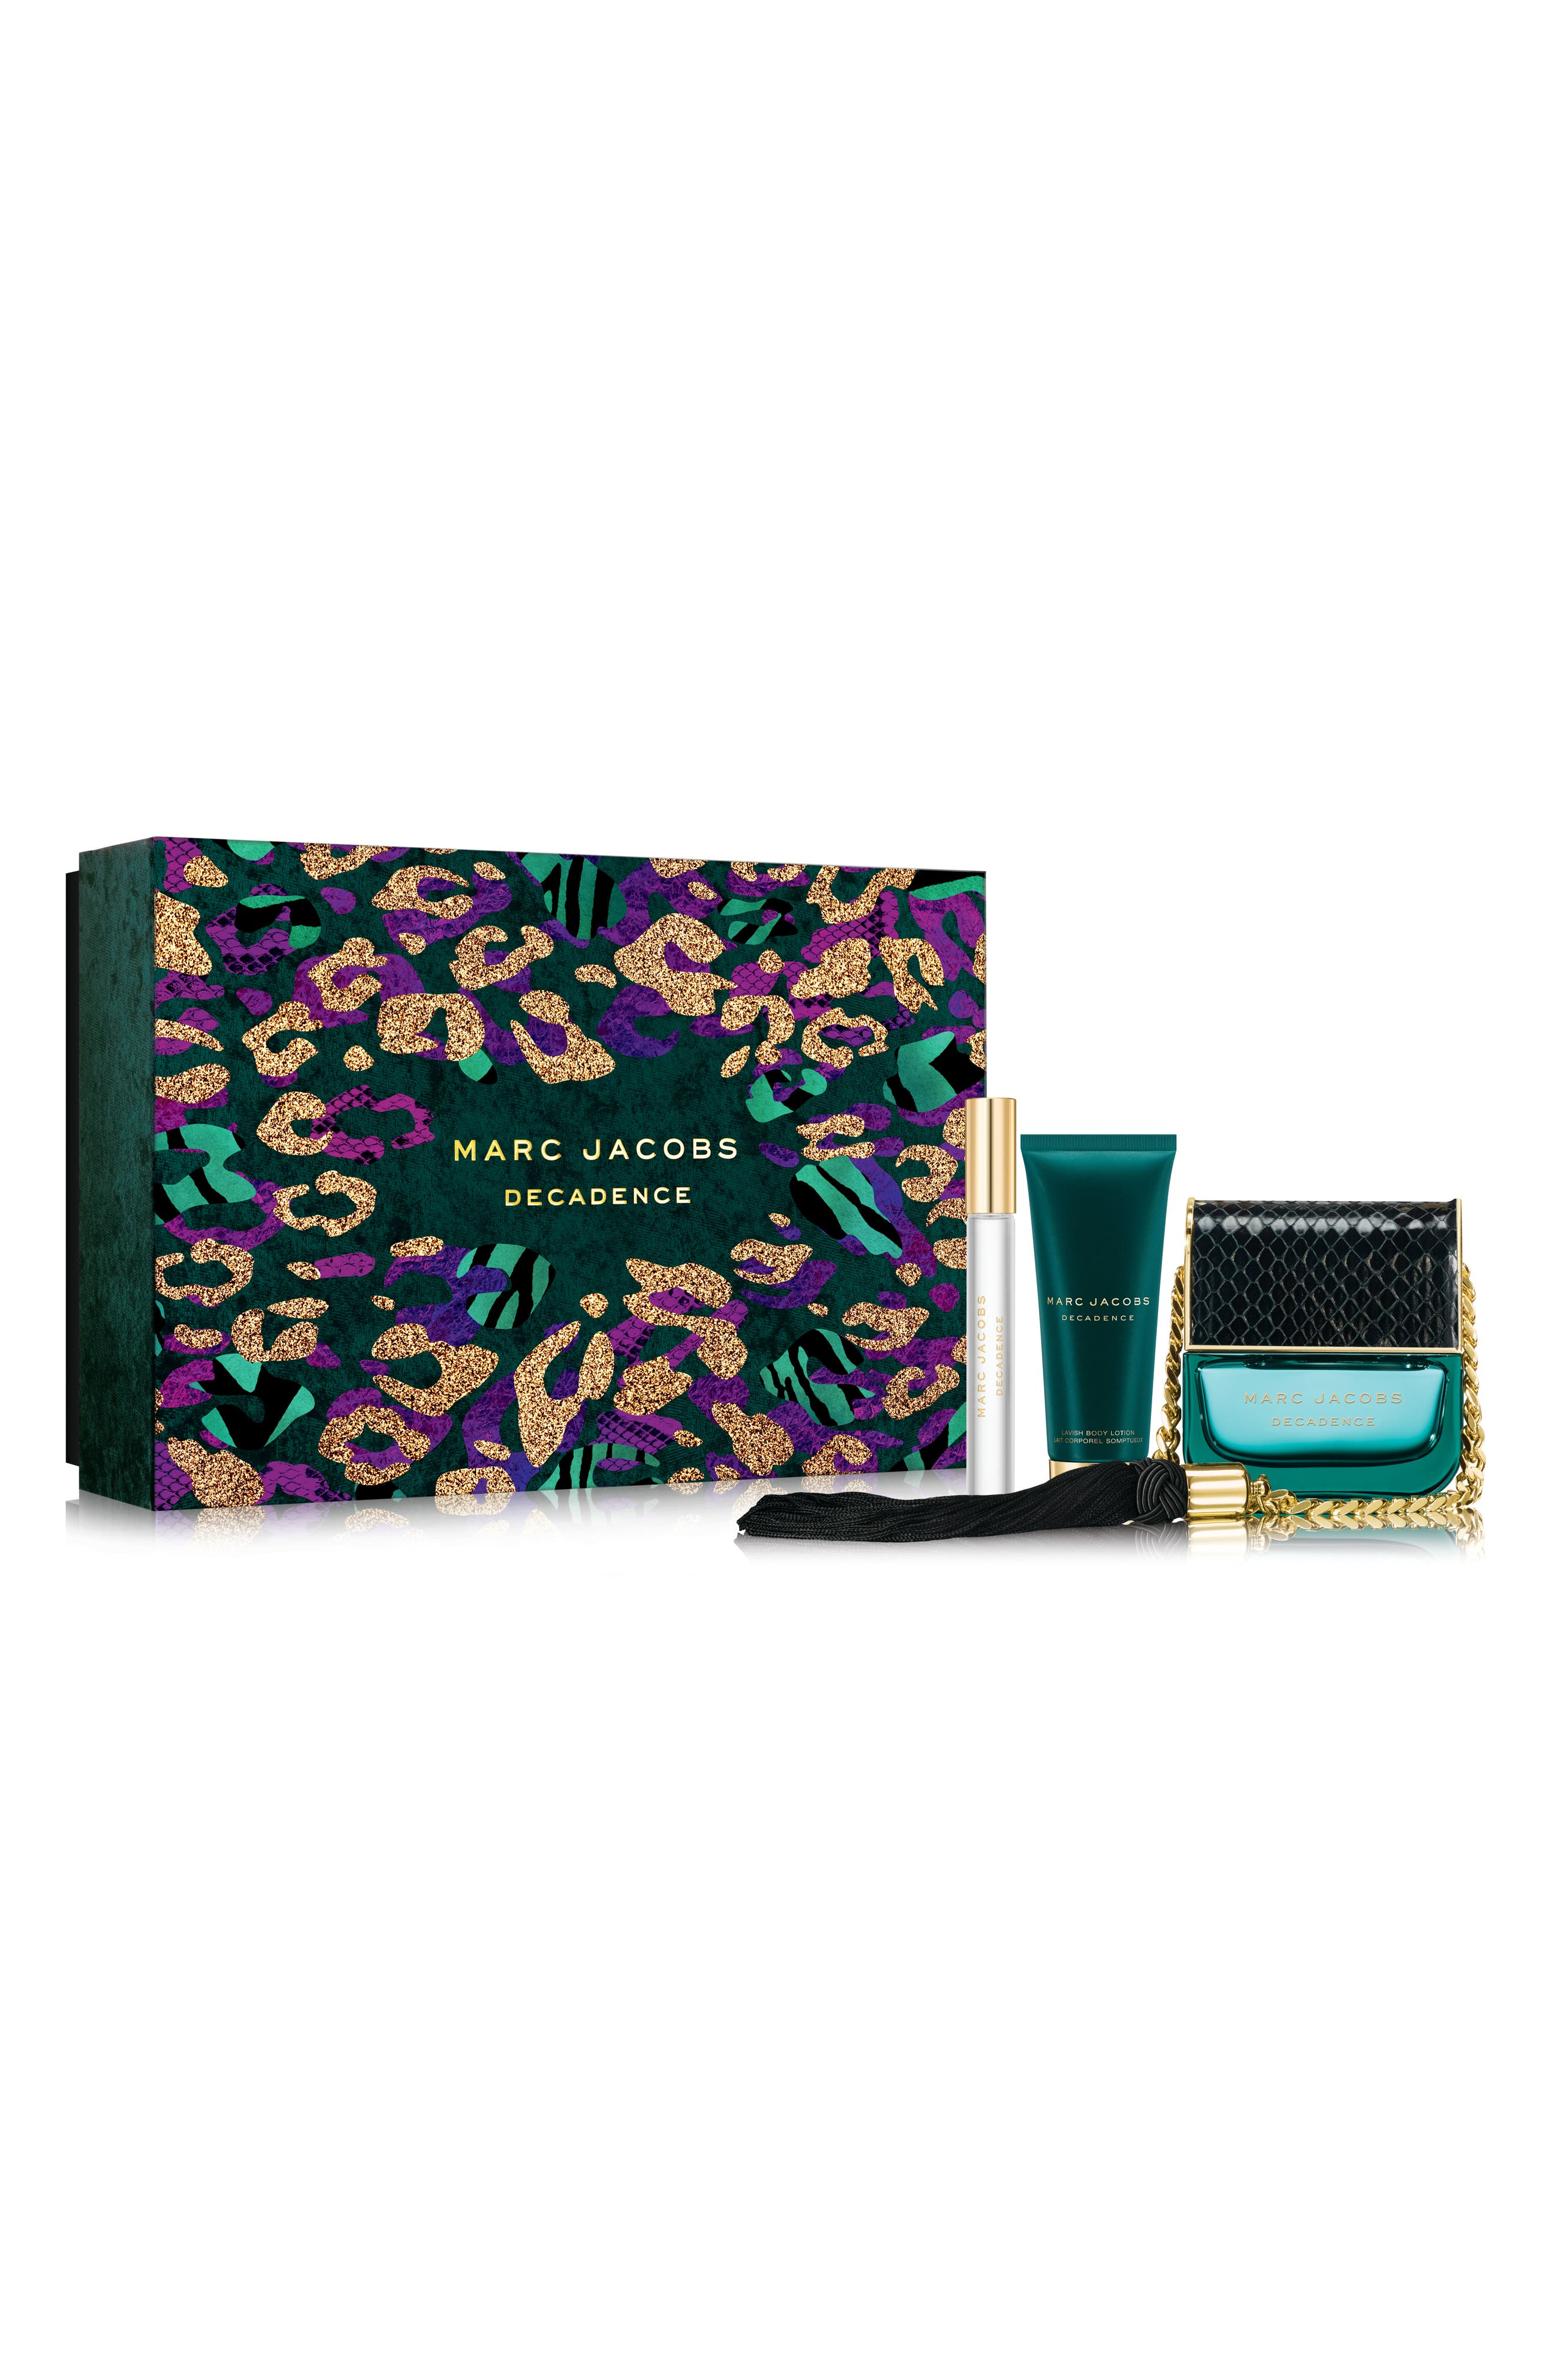 MARC JACOBS Decadence Three-Piece Set ($177 Value)